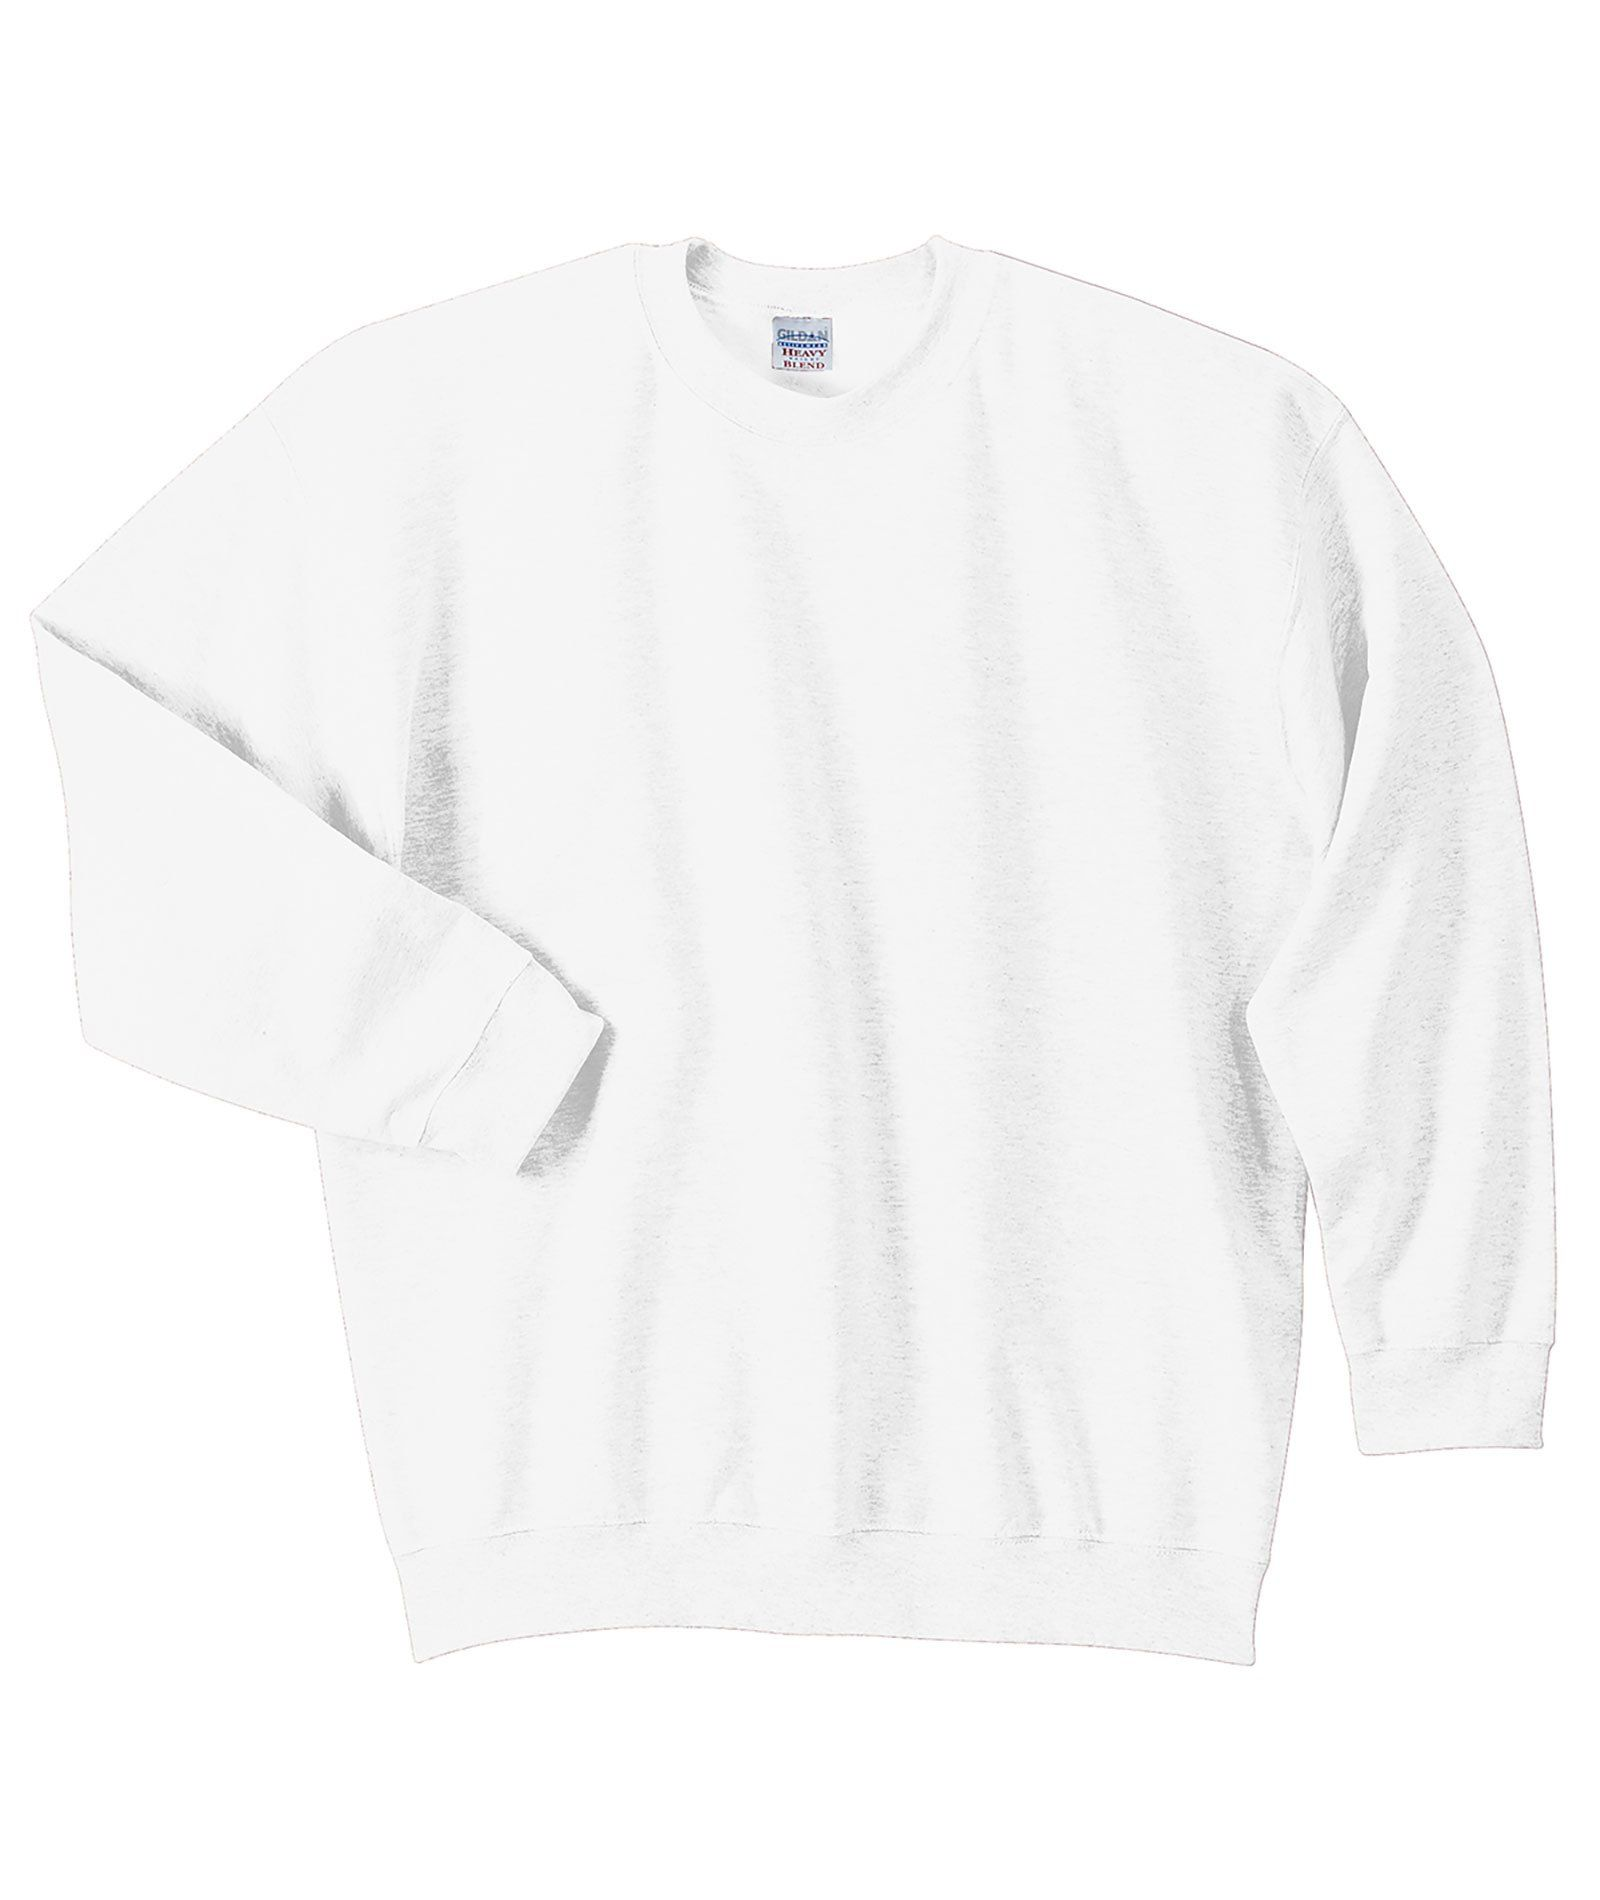 This super soft crew pullover from Gildan is great to wear everyday, lounge around the house in and at camp. A great item to tie-dye or even add a camp transfer to!